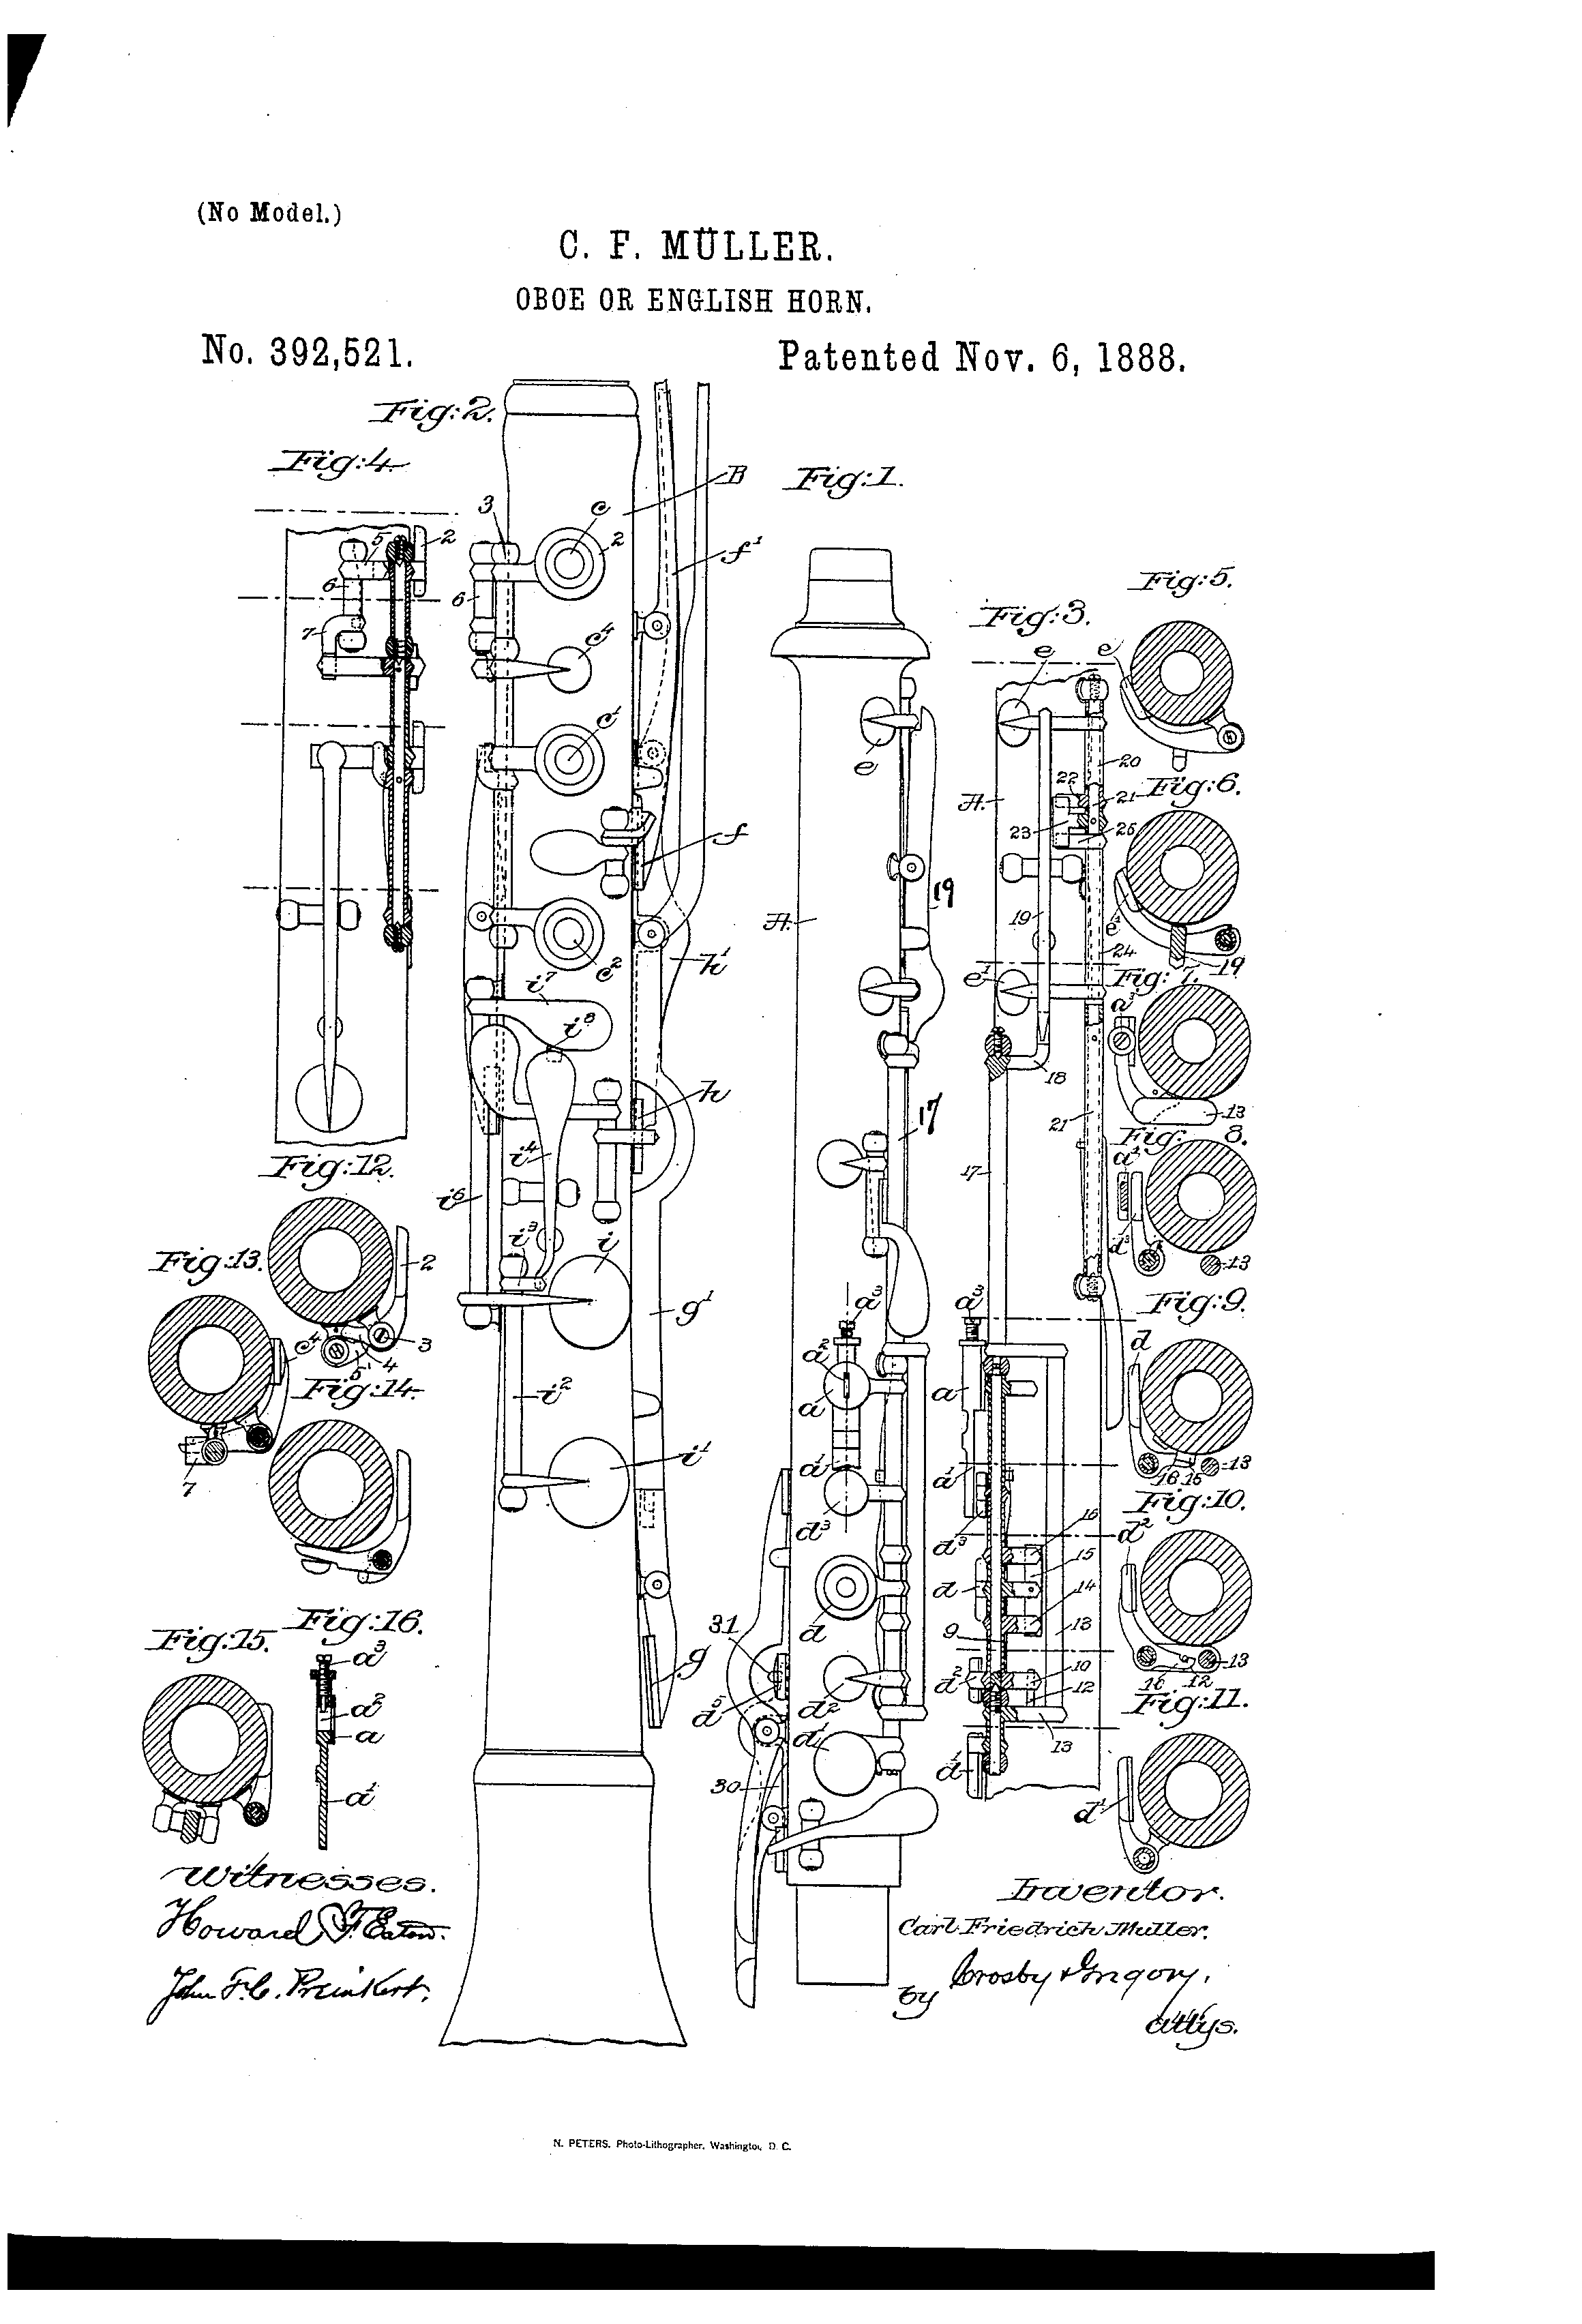 patent us392521 oboe or english horn google patents english horn oboe musical [ 2320 x 3408 Pixel ]